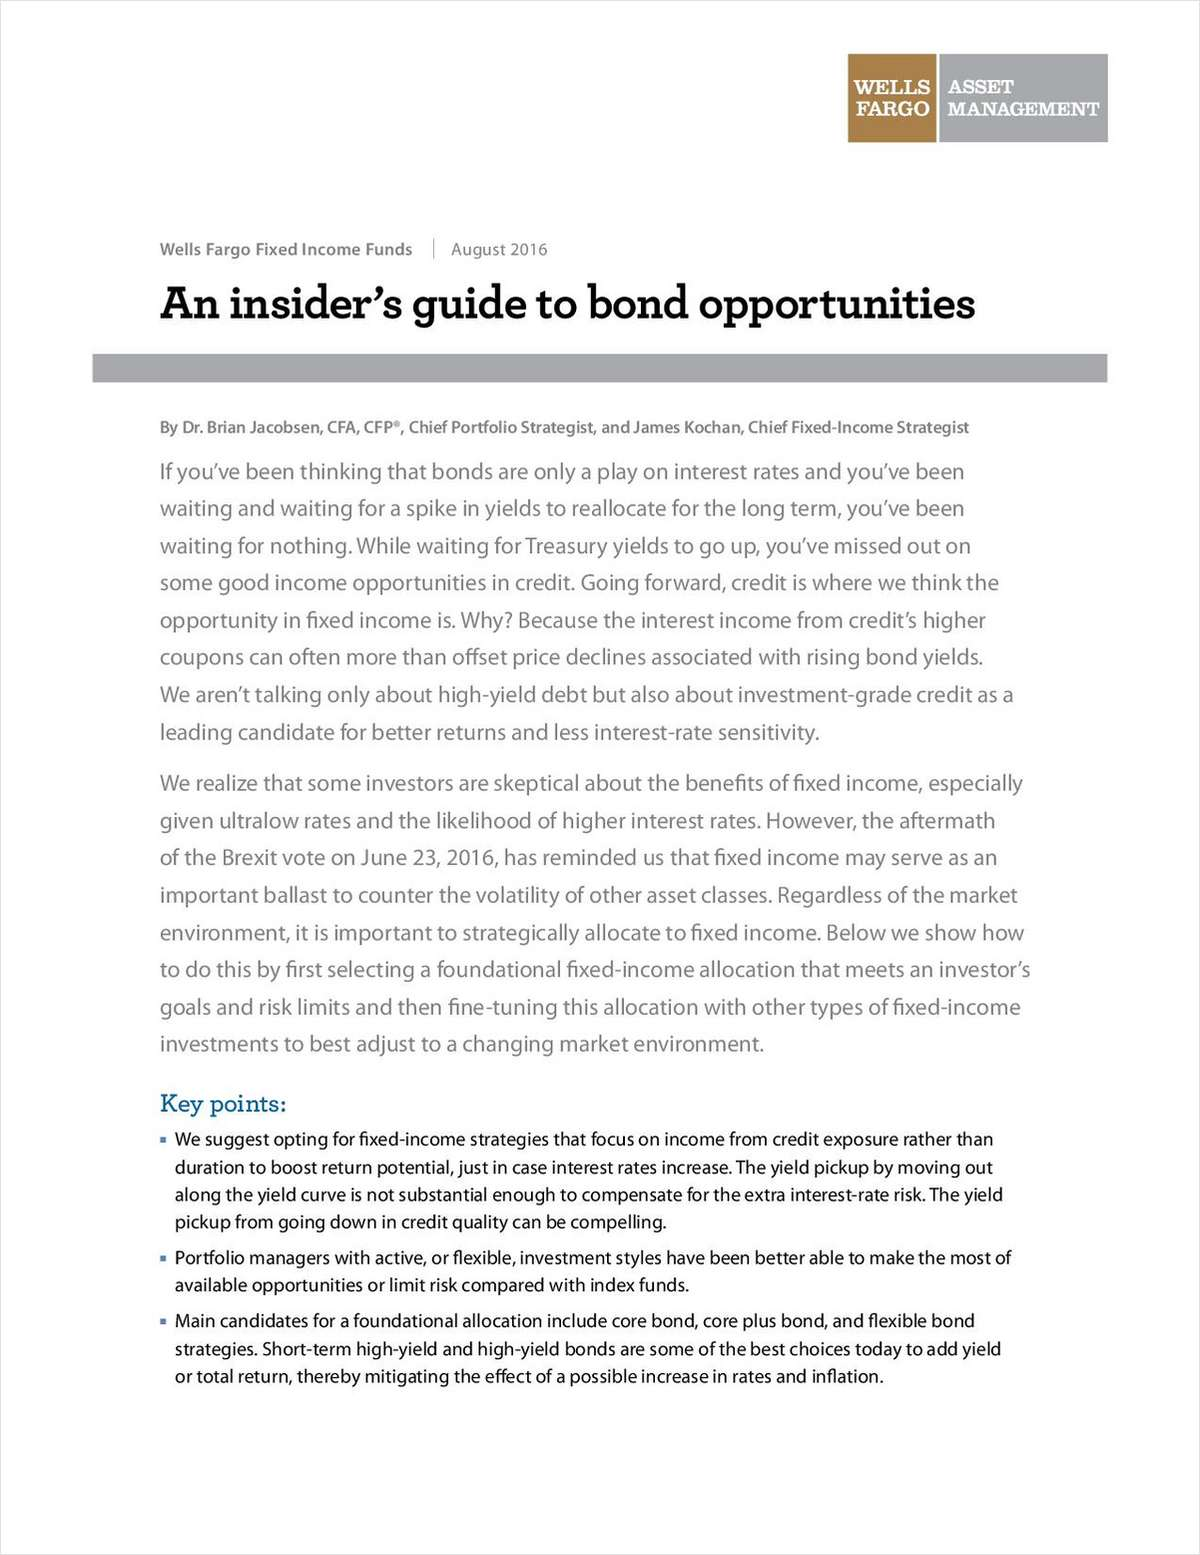 An Insider's Guide to Bond Opportunities